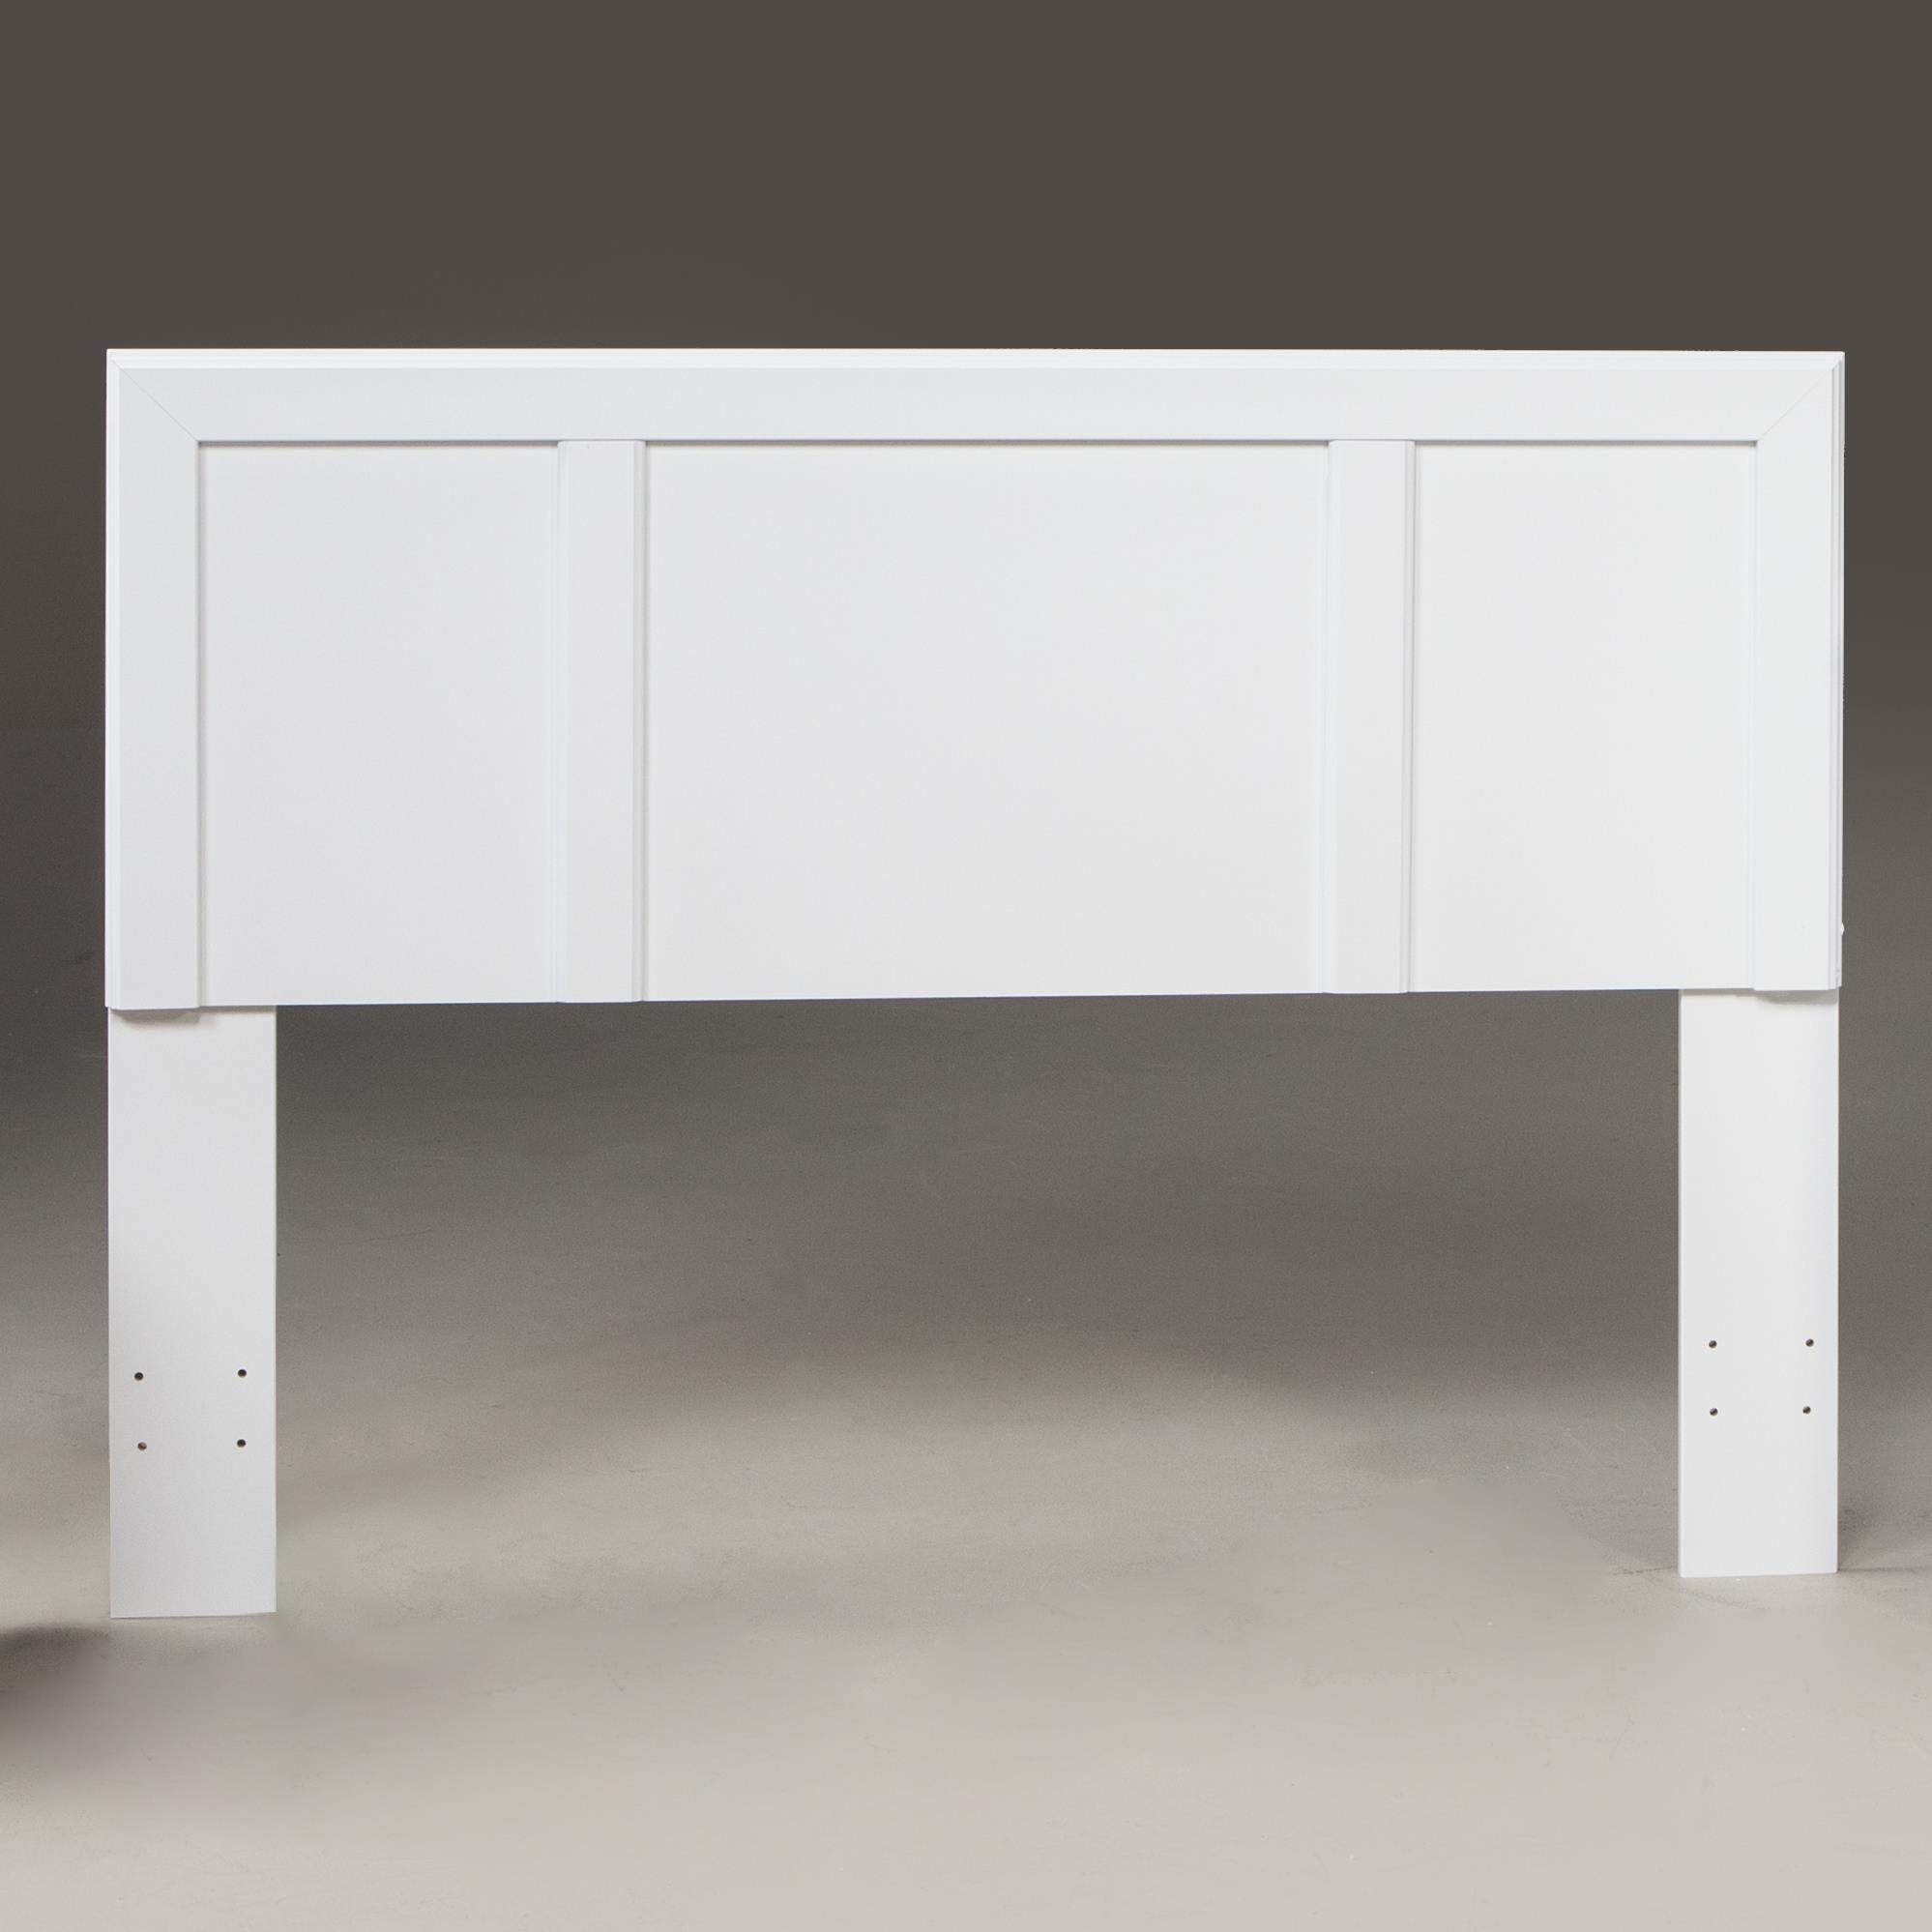 Kith Furniture 193 White F/Q Headboard - Item Number: 193-53